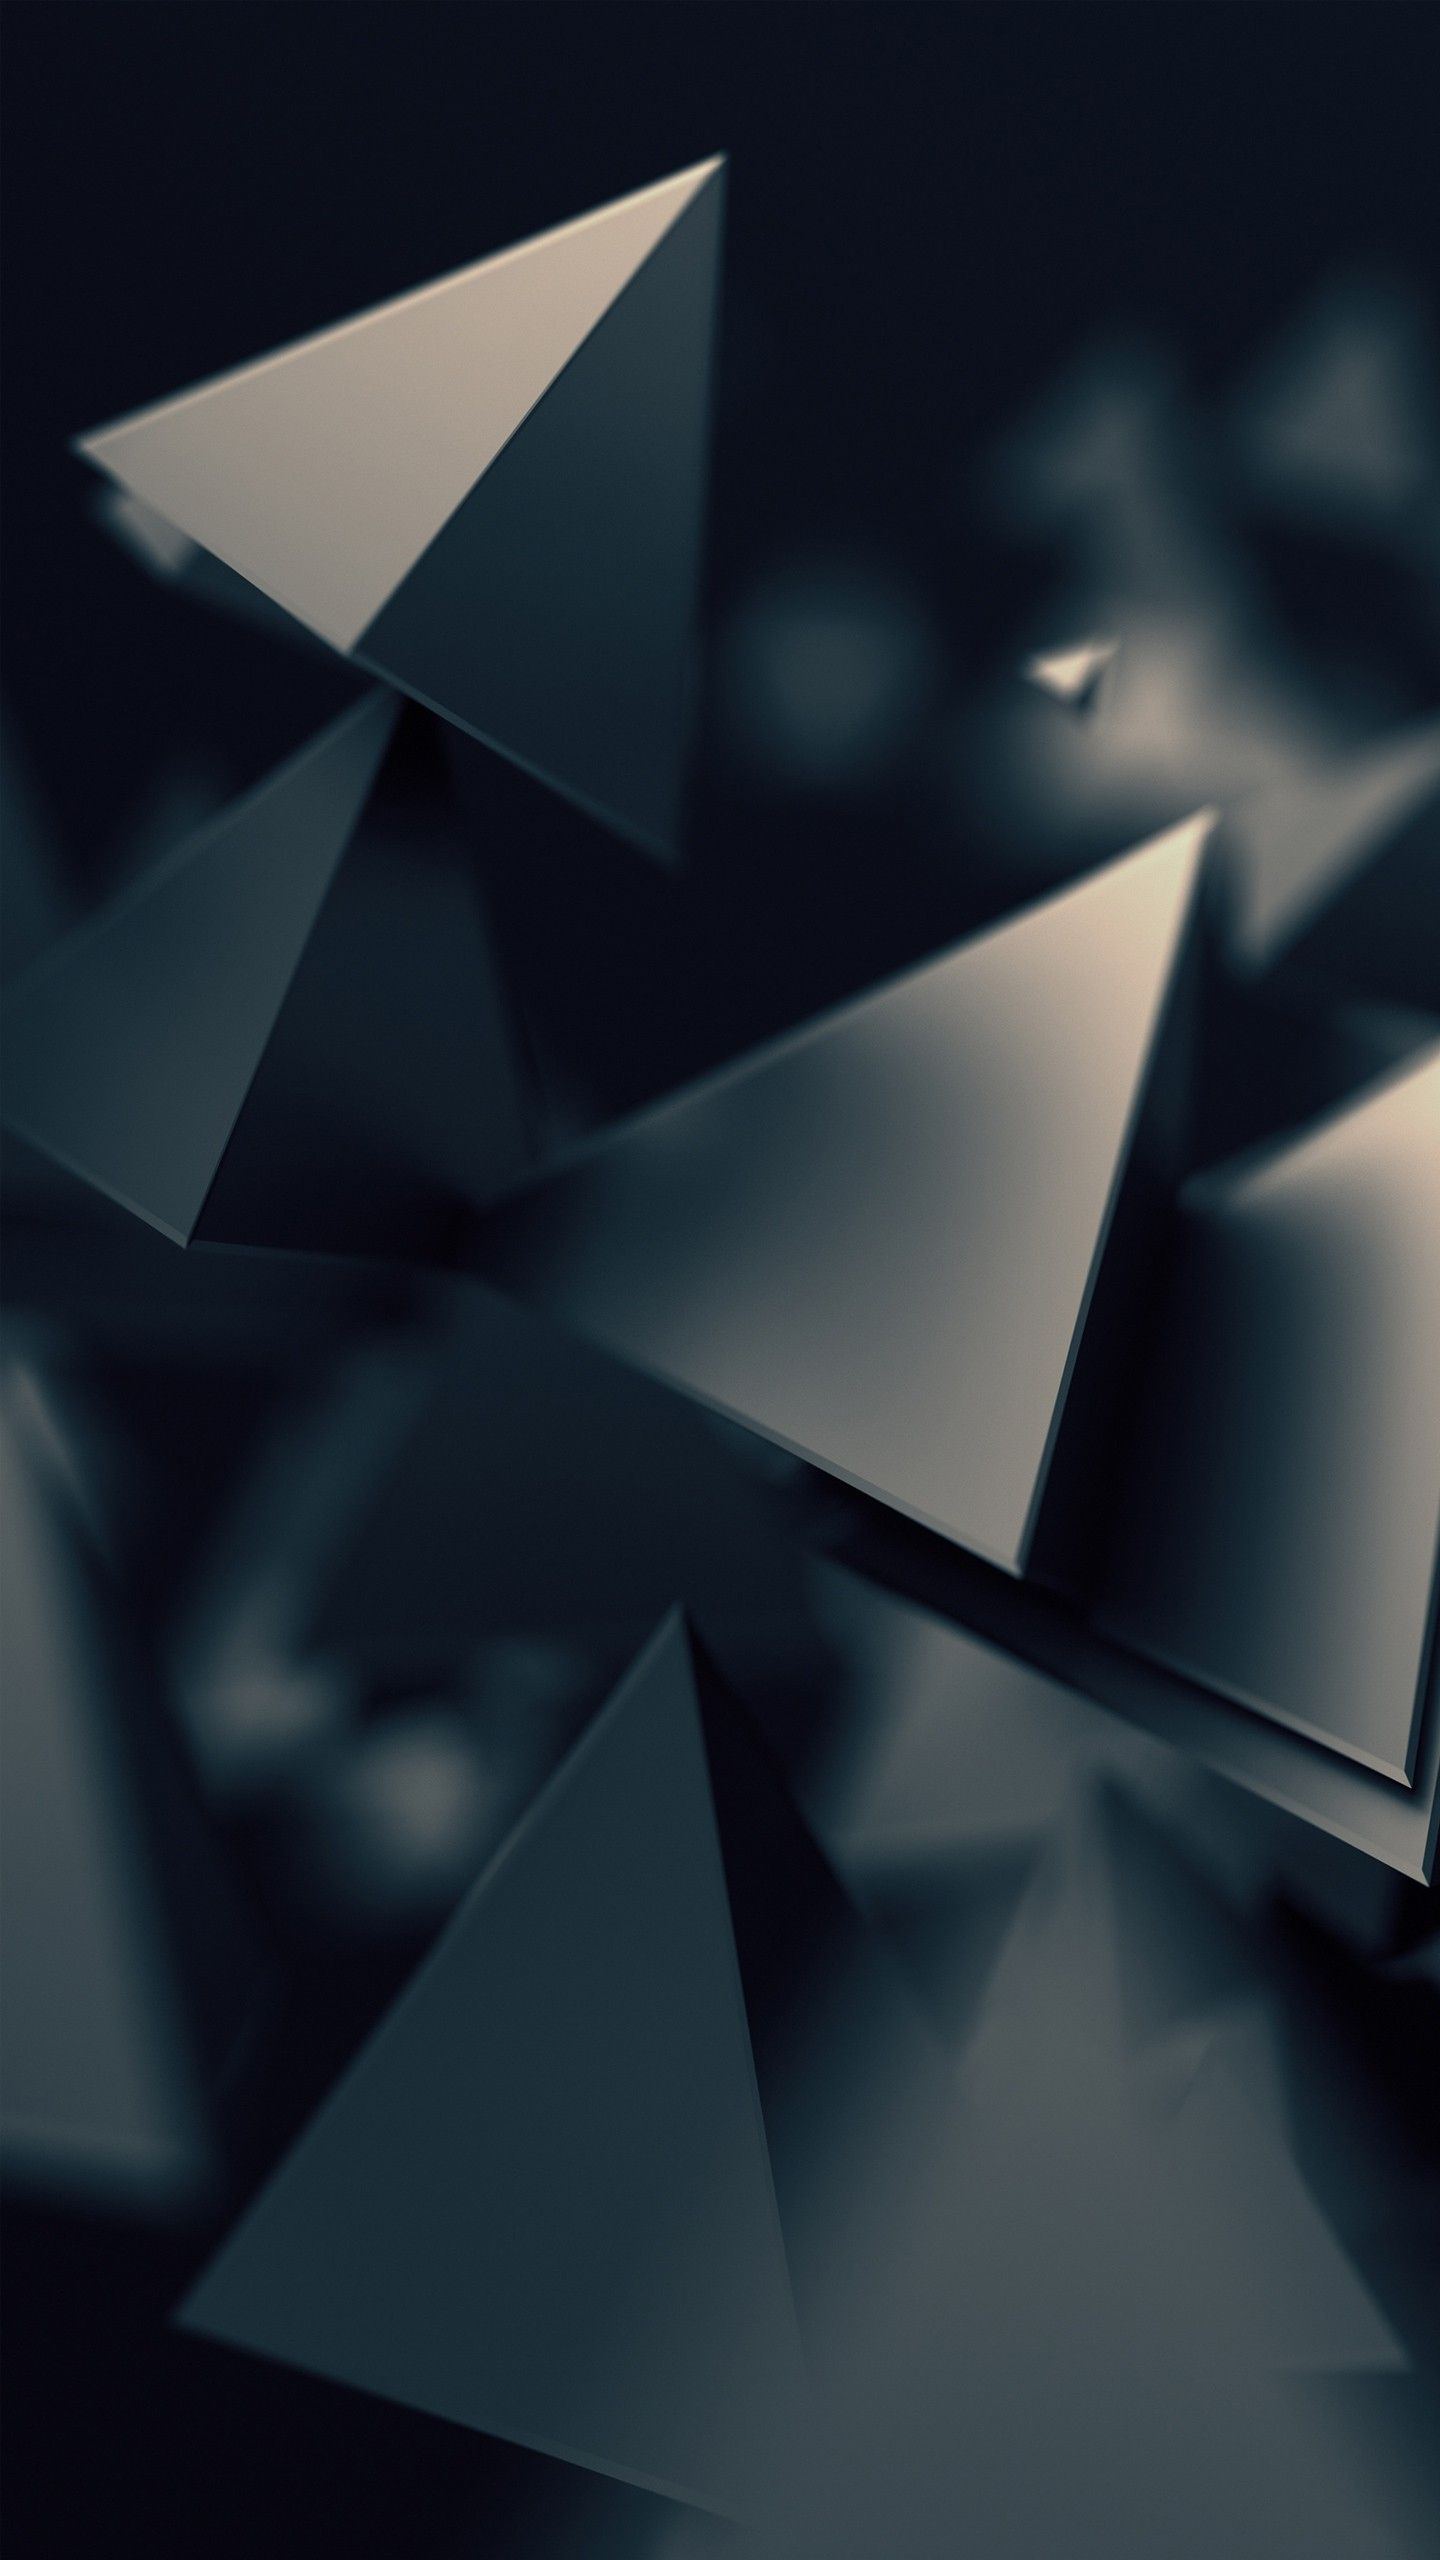 Abstract 3d Triangles Dark Wallpapers Wallpaper Abstract Qhd Wallpaper